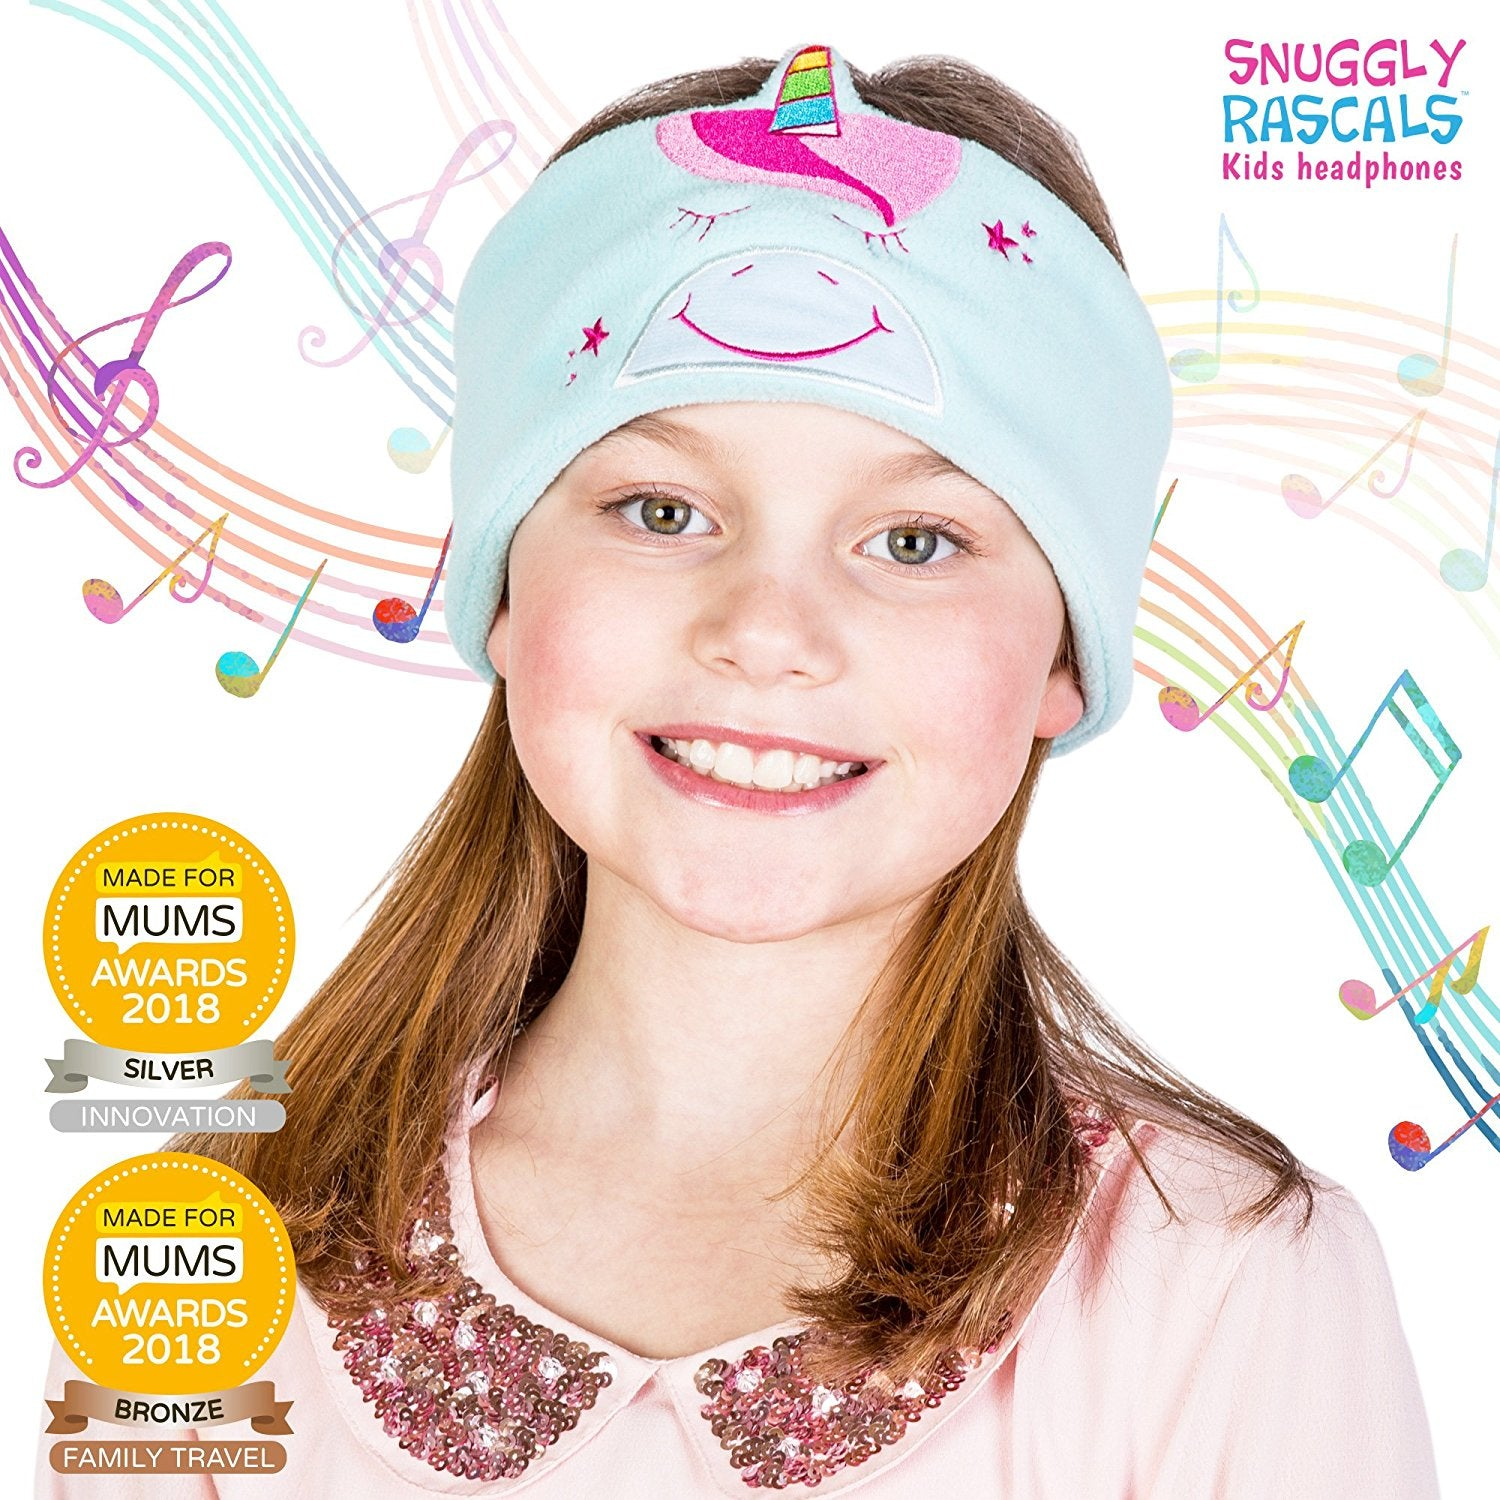 Snuggly Rascals (v2) Kids Headphones - Headphones for Kids - Ultra-Comfortable, Size Adjustable and Volume Limited - Great for Travel & Use with Children's Tablets and Smartphones - Suitable for Girls and Boys - Repackaged